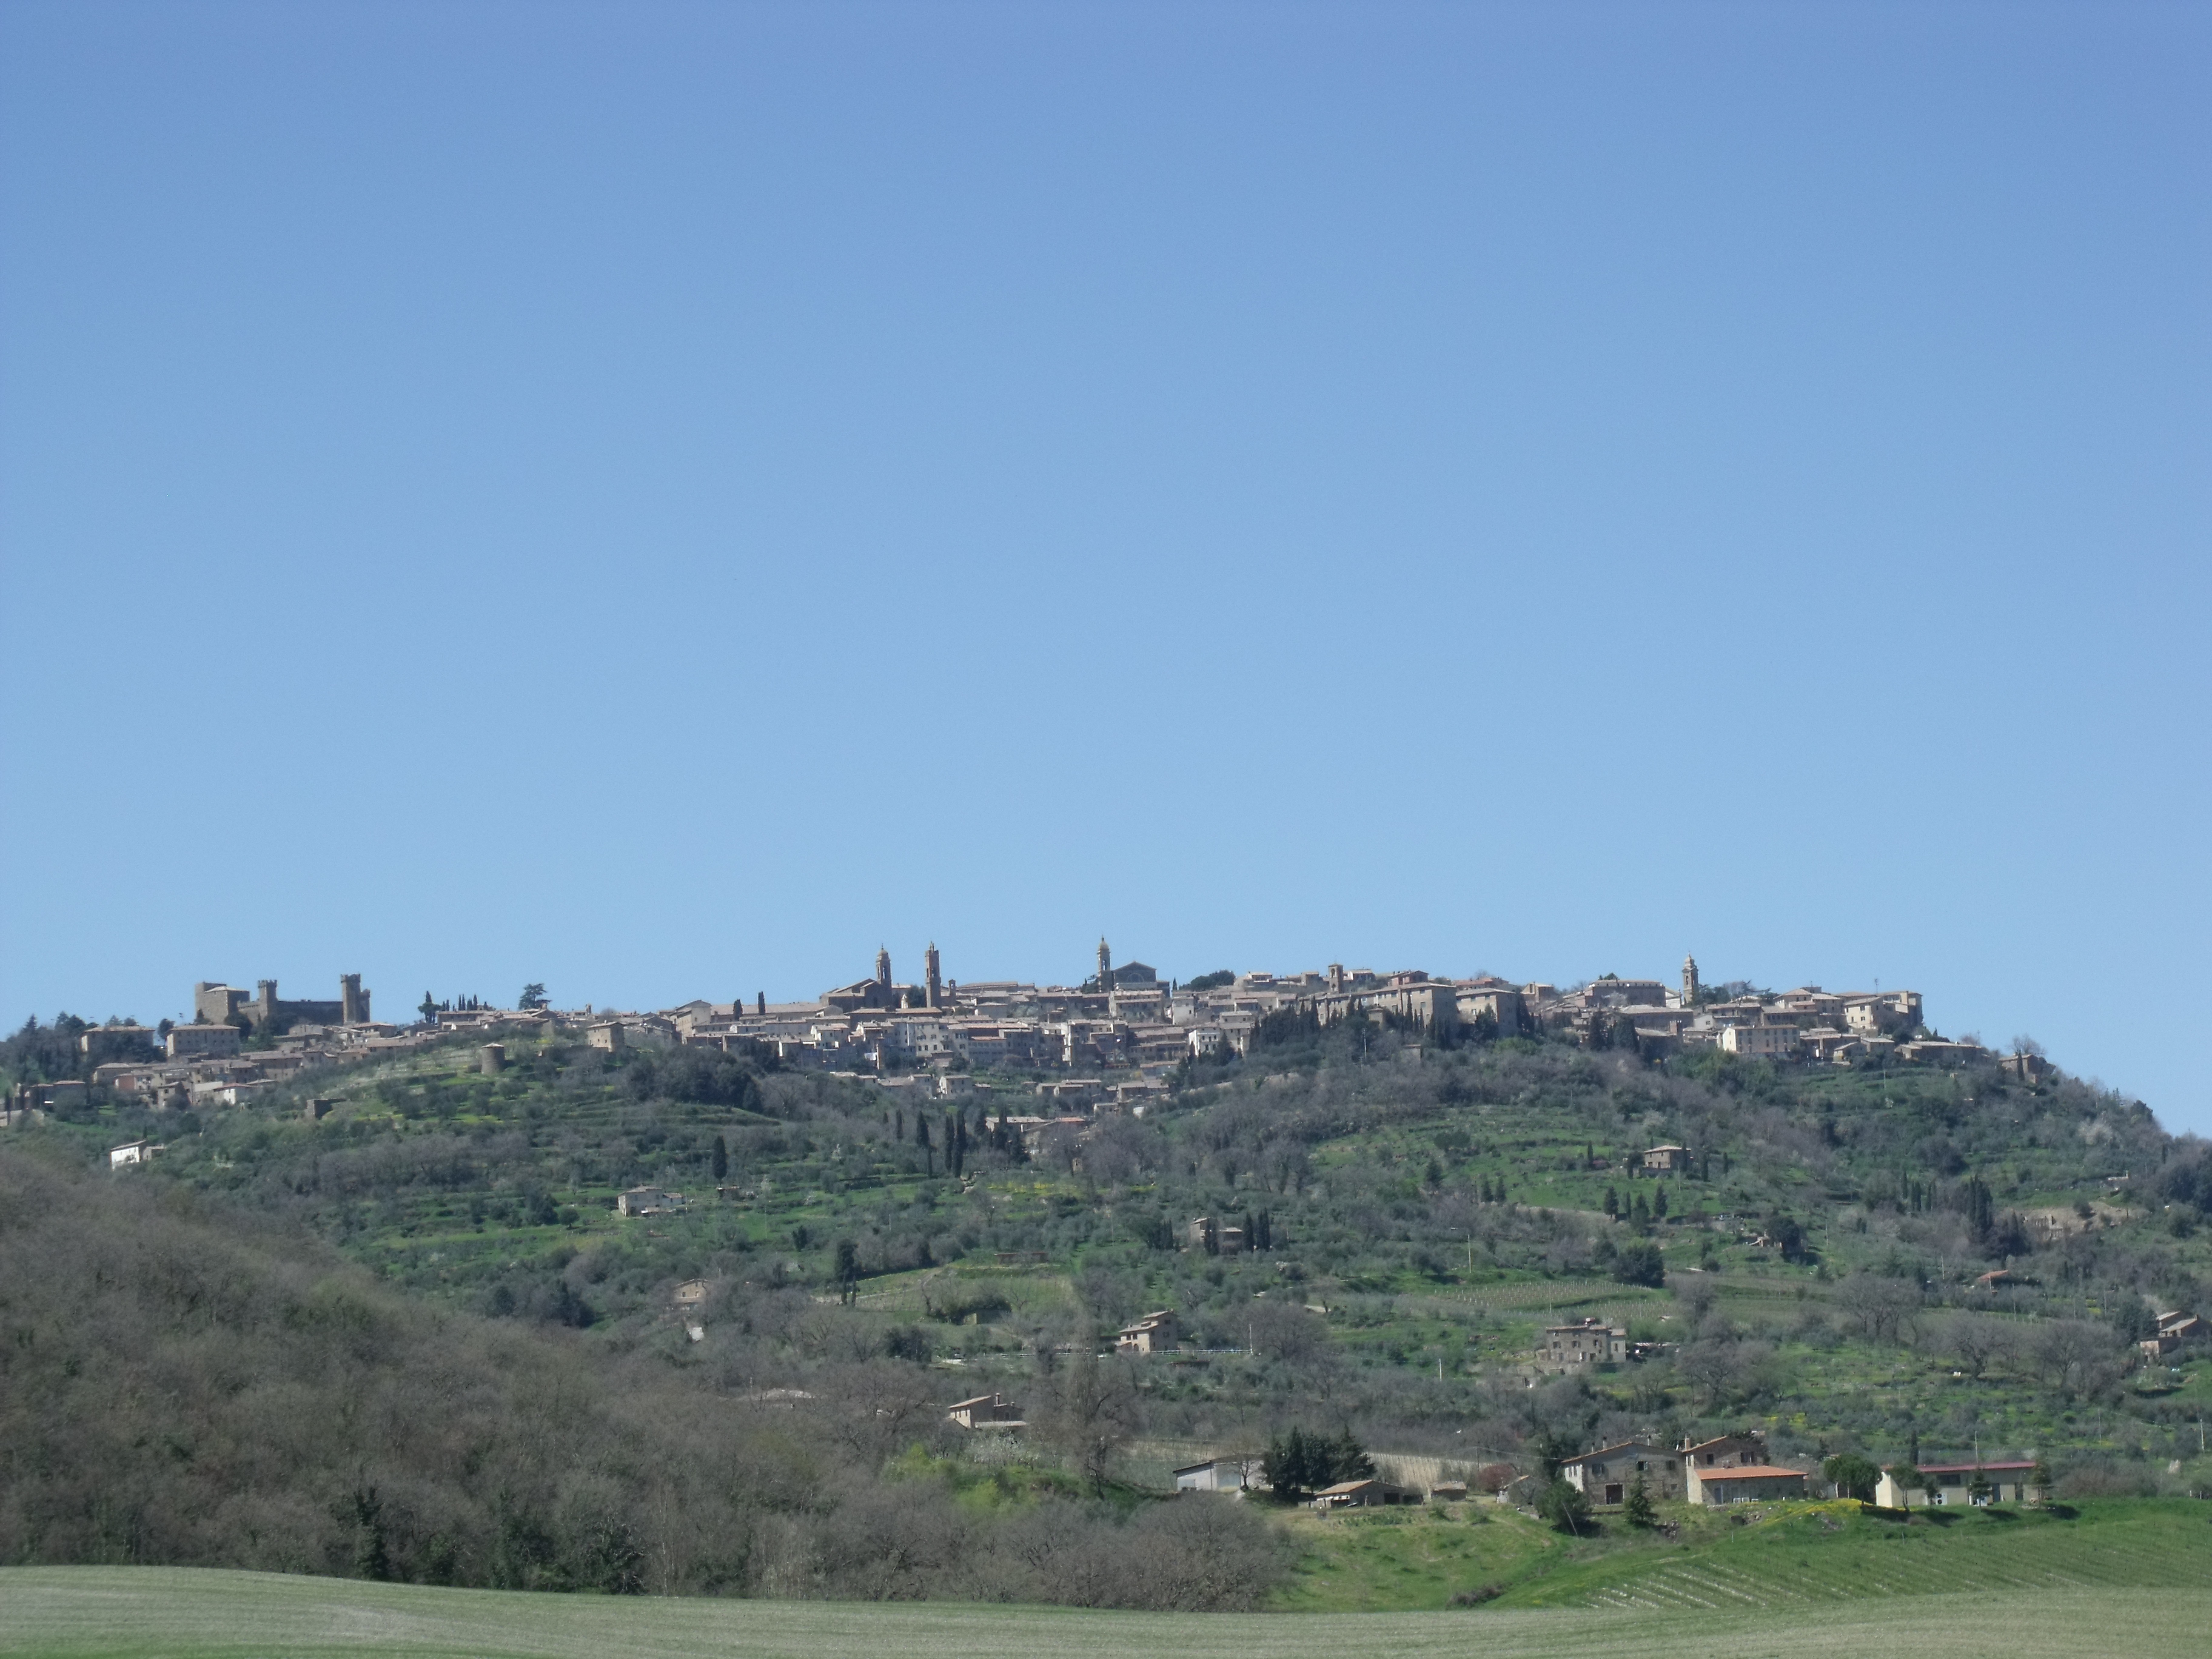 Montalcino, mediaeval village in the heart of the Brunello wine region in Southern Tuscany